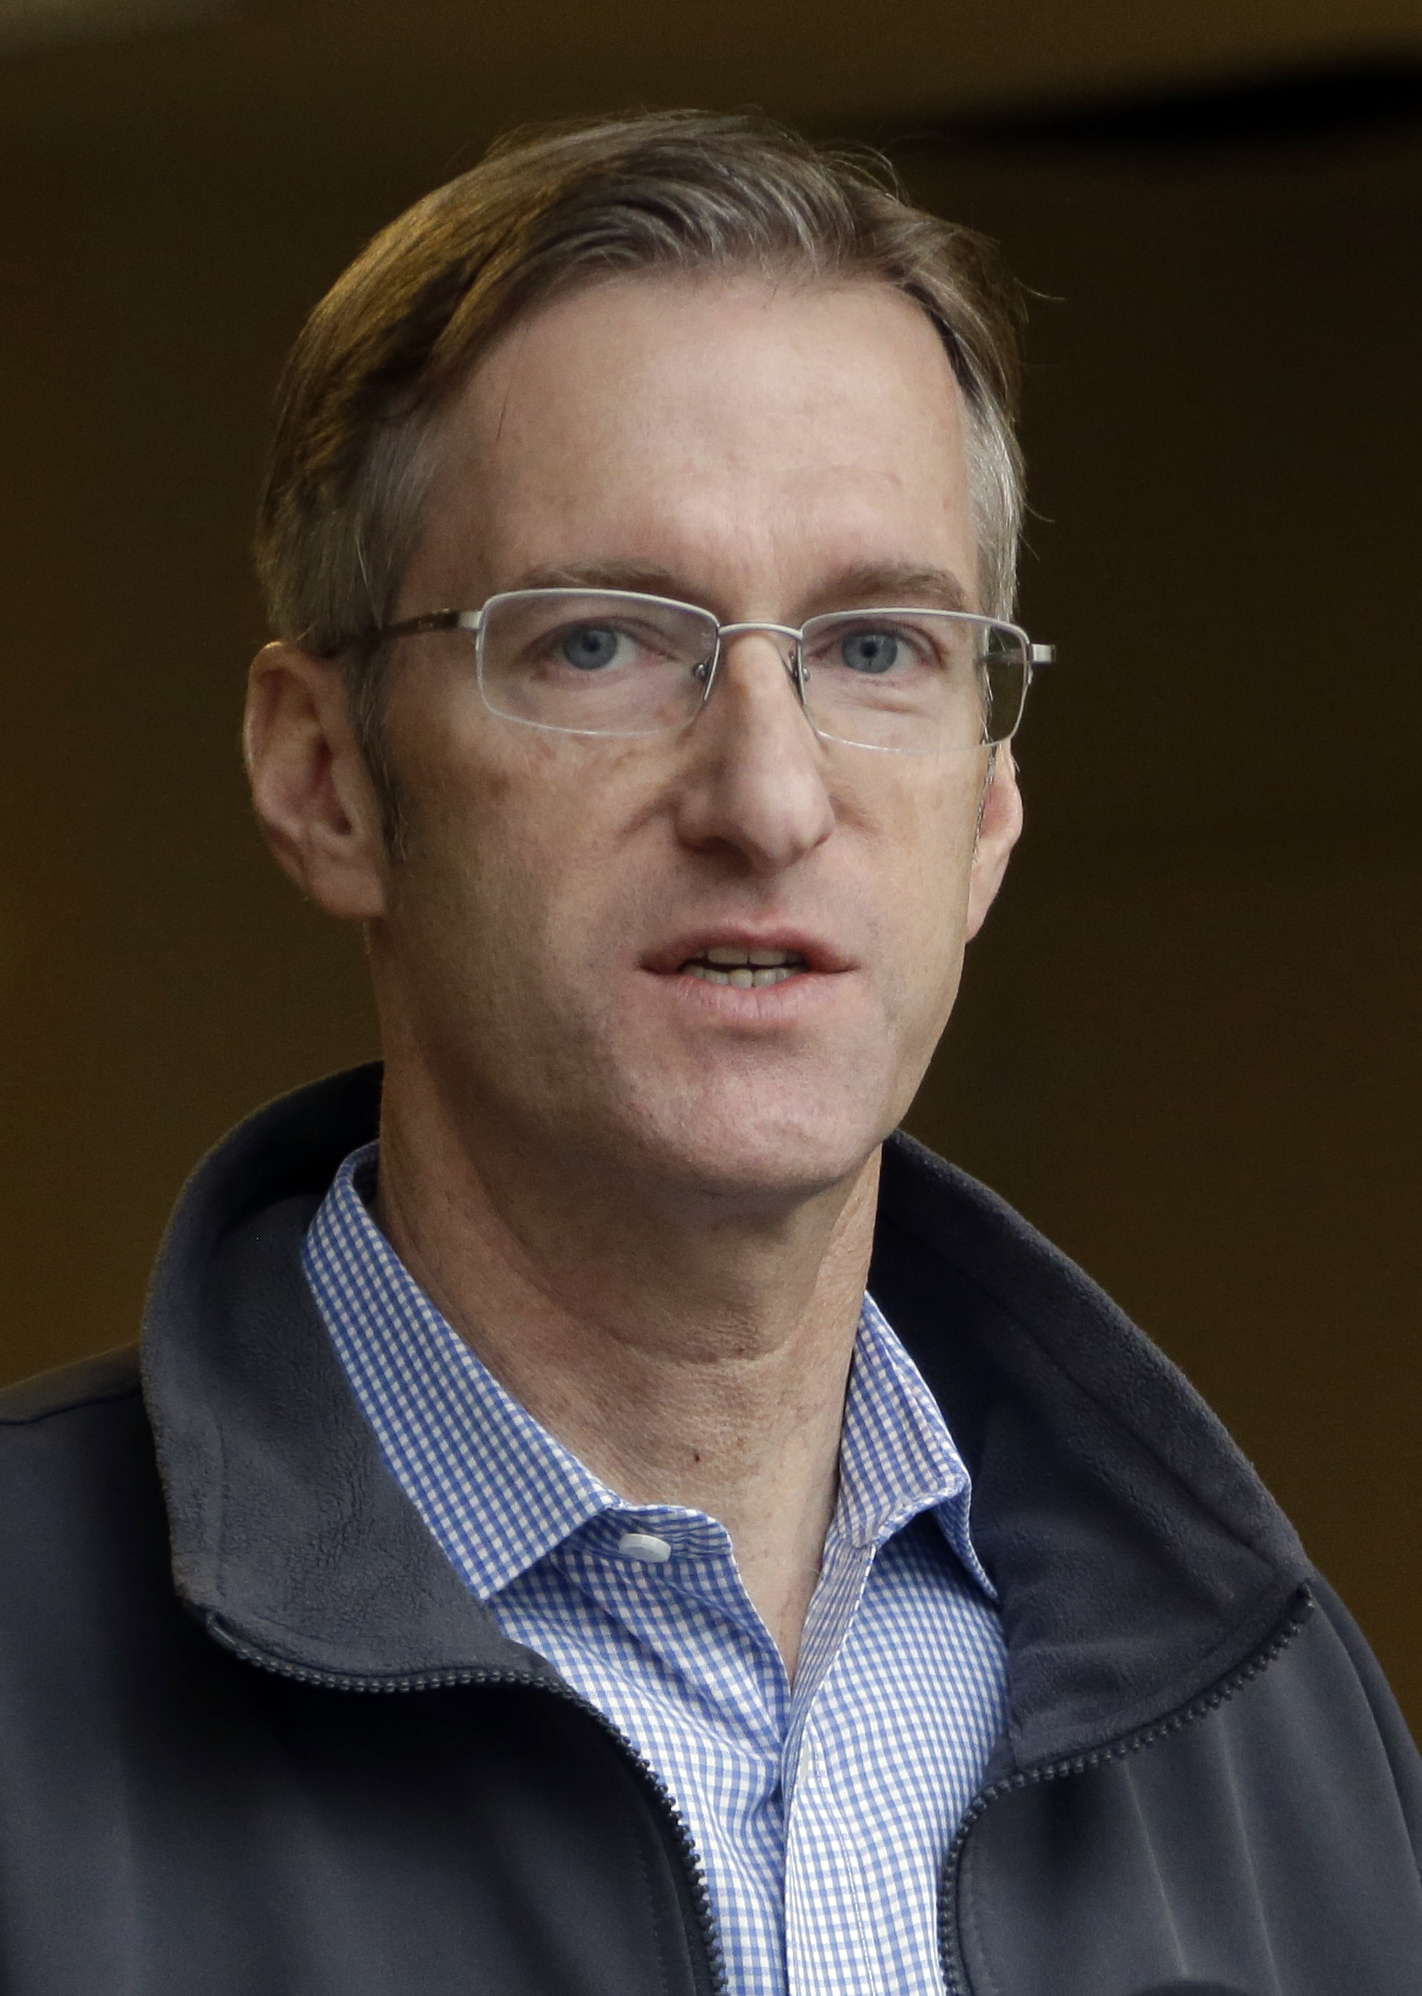 Portland Mayor Ted Wheeler speaks during a press conference in Portland, Ore. on Jan. 17, 2017 .